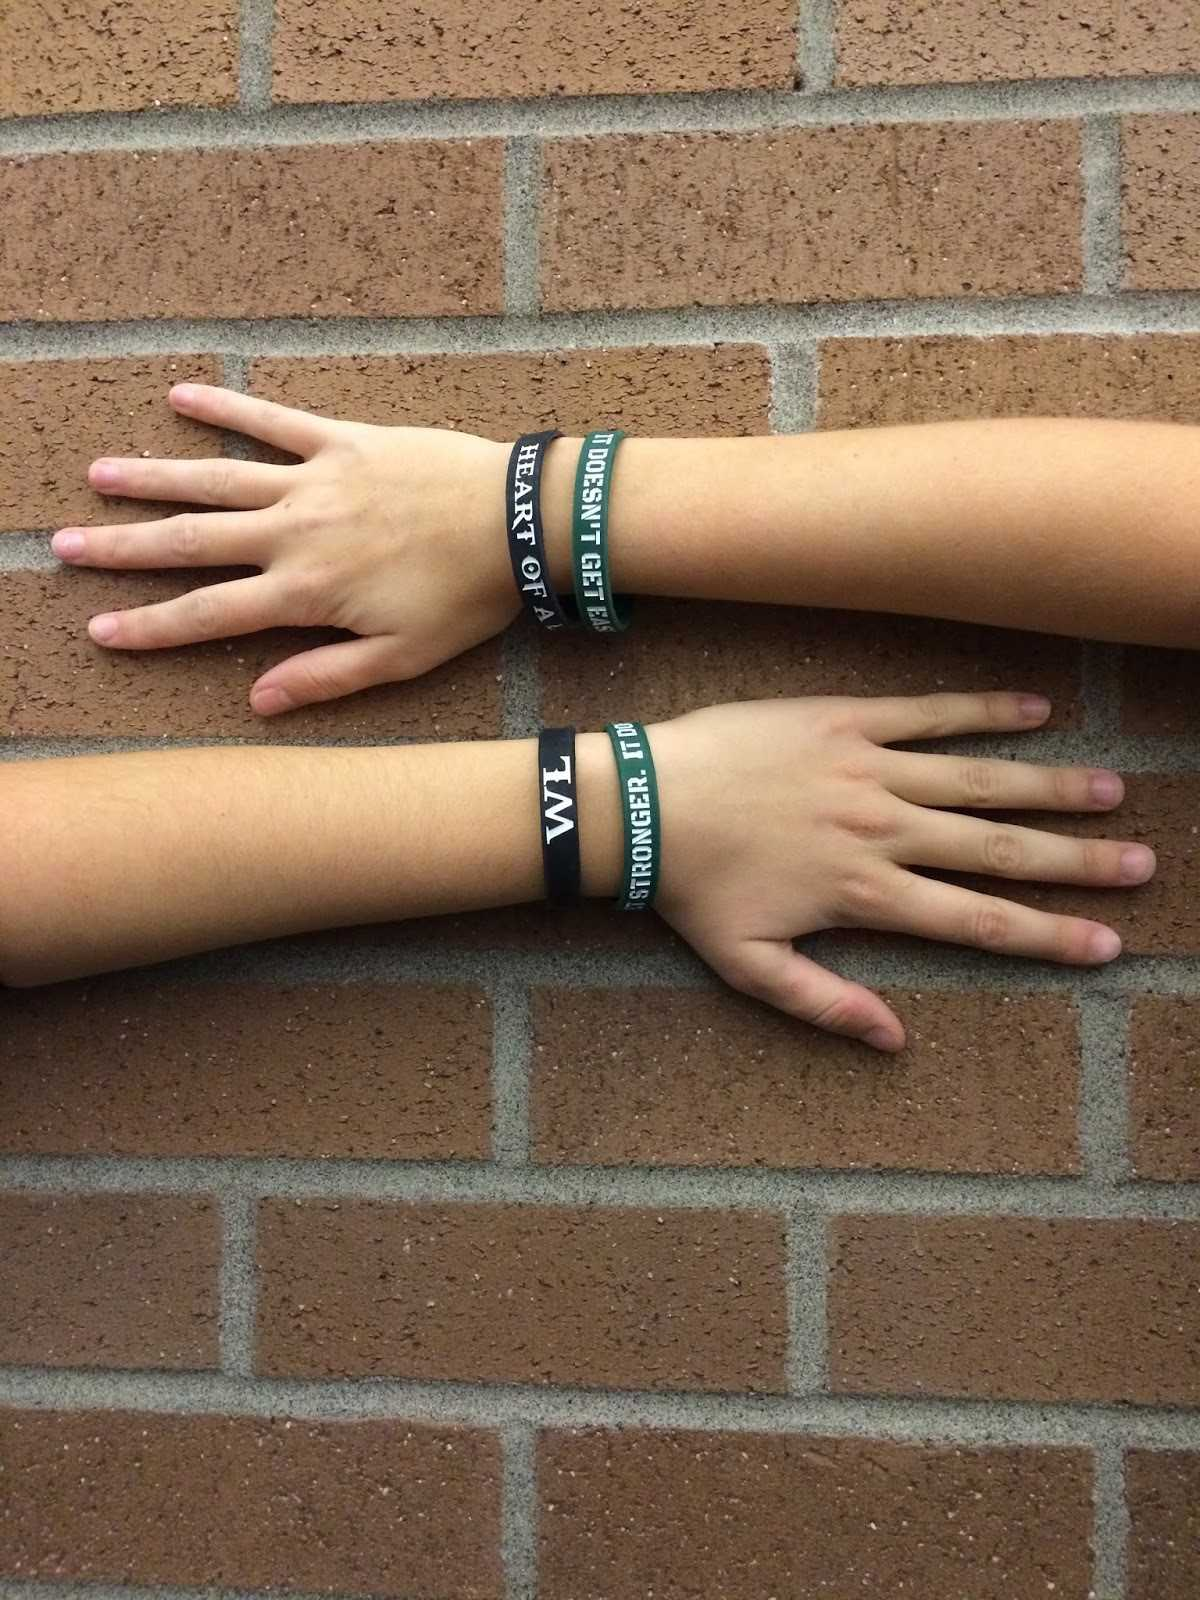 Students support their high school softball team by wearing new West Linn bracelets. The WLHS softball team is selling bracelets as a fundraiser for their upcoming season.